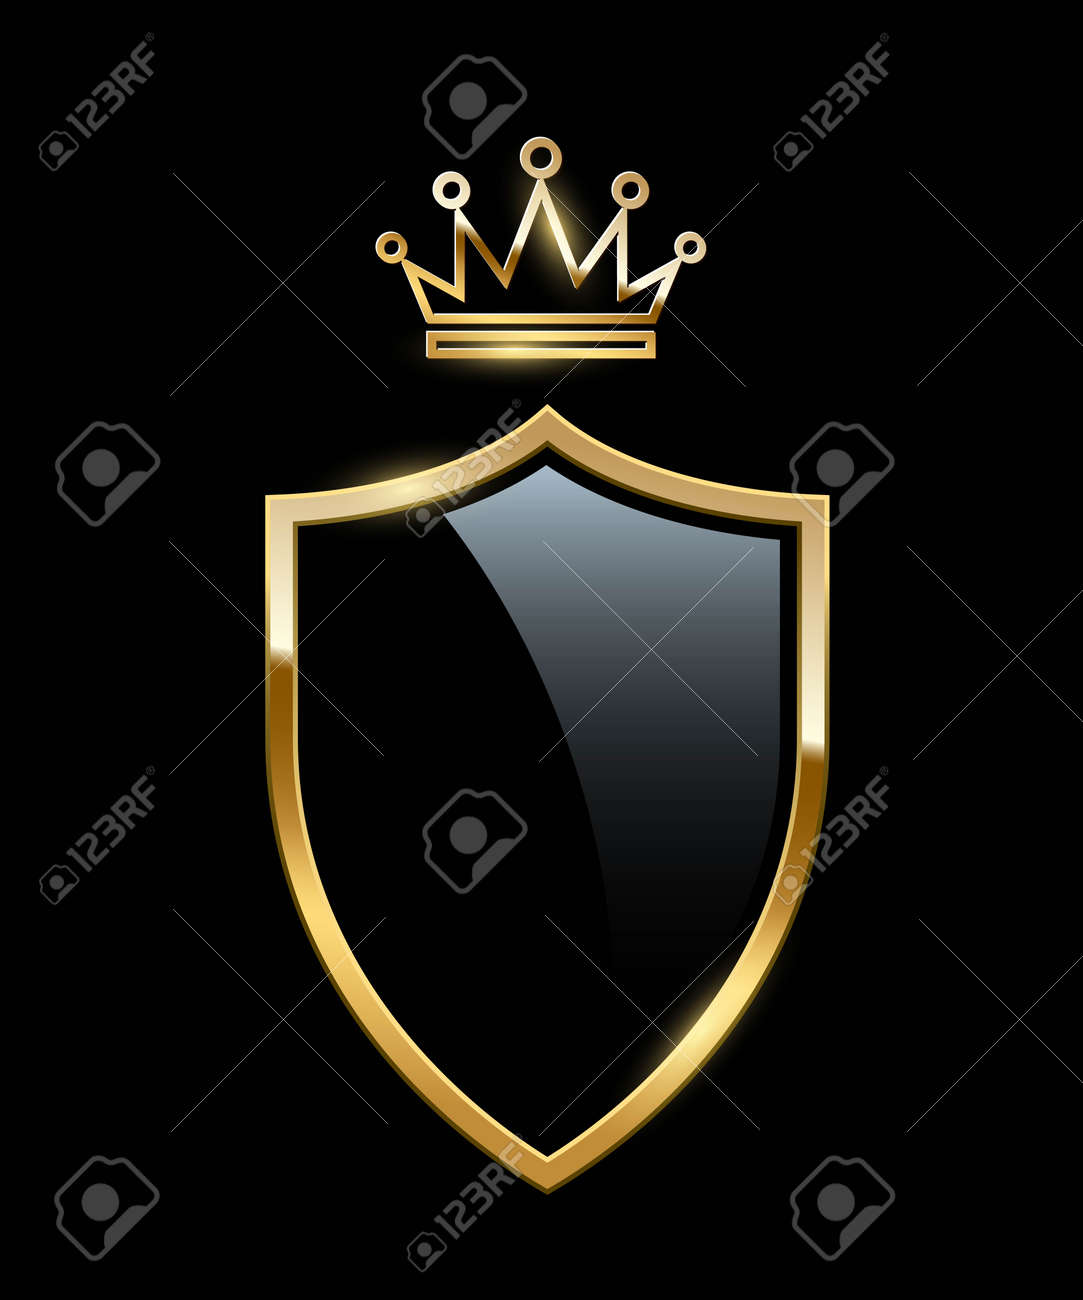 Glass shield with golden frame and crown. Gold heraldic emblems vector illustration. Retro luxury elements with shining sparkles. Heraldry insignia, antique decor on black background - 163505115